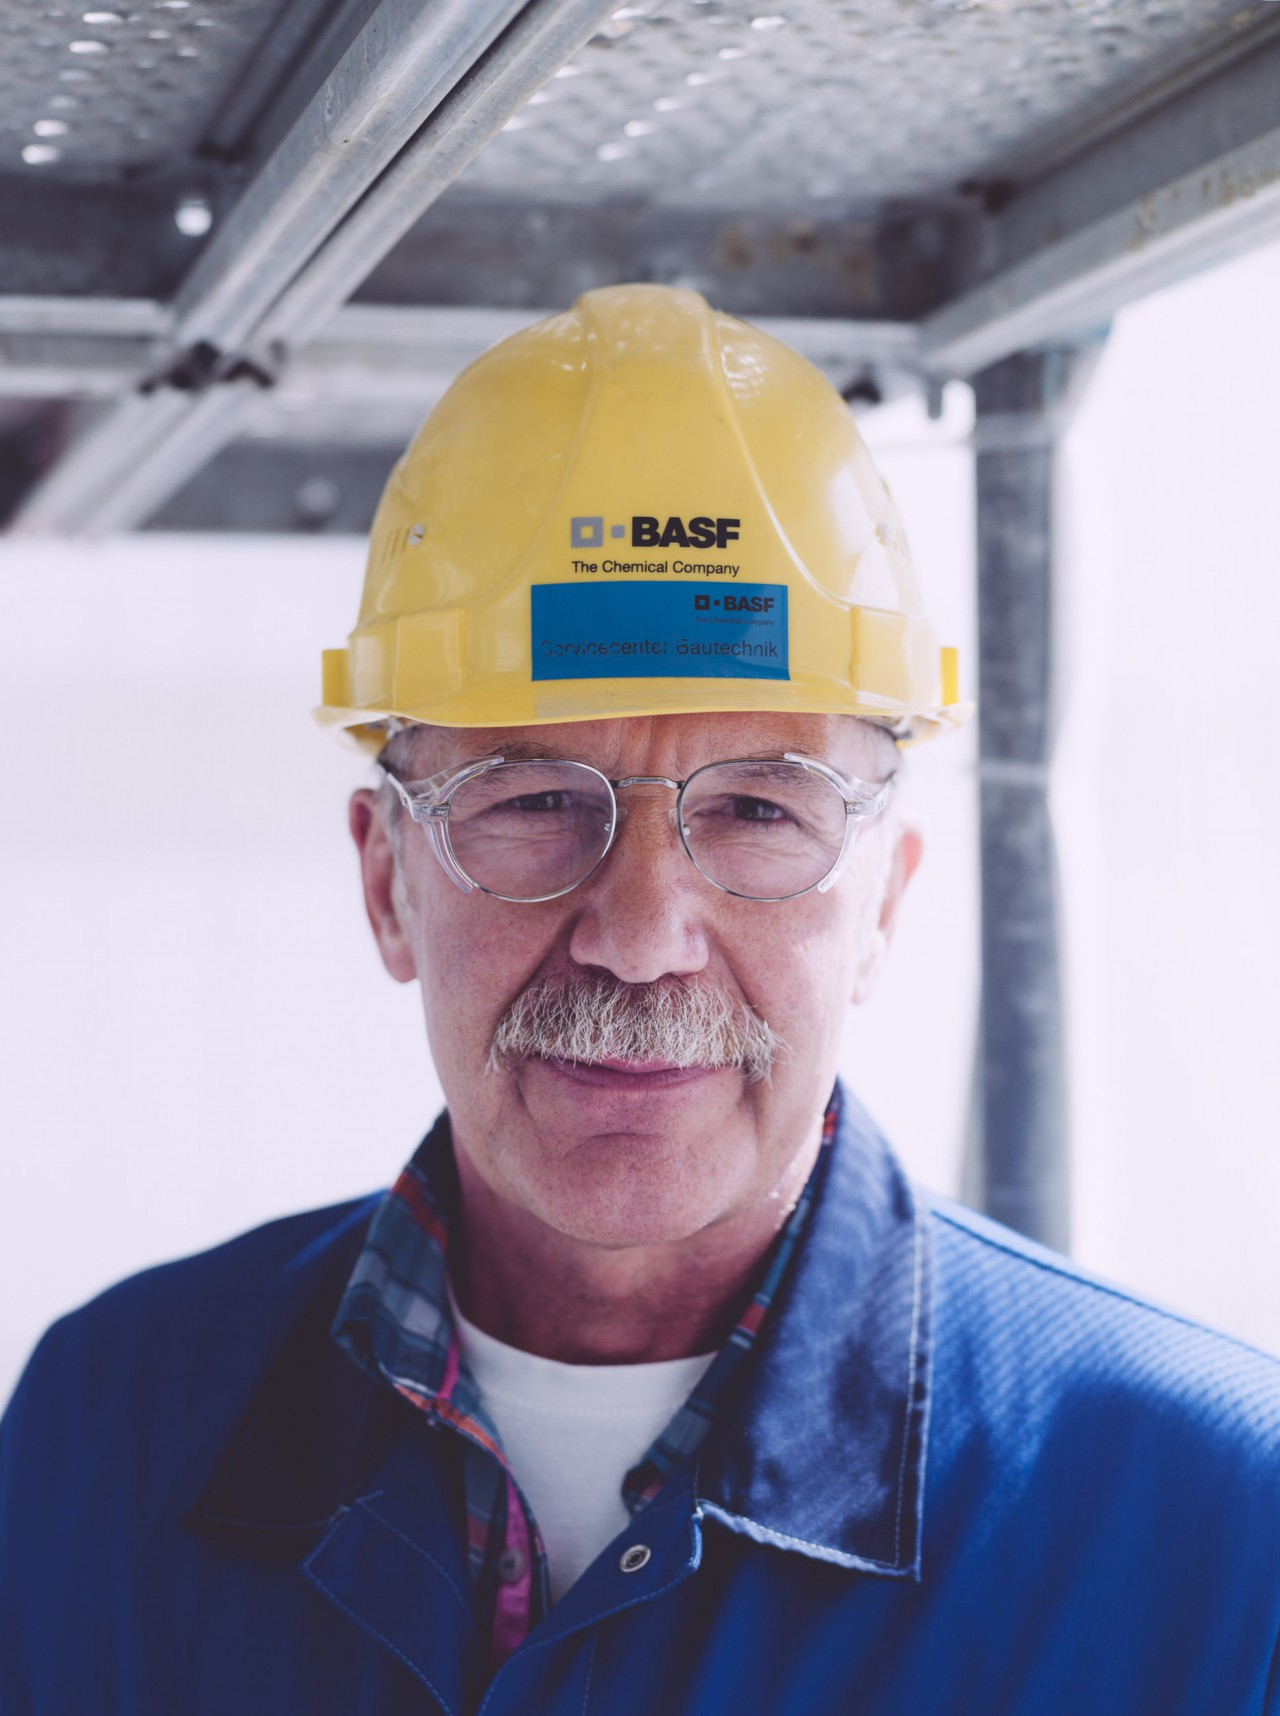 I DO NOT WORK FOR SEXIST RACIST  FASCISTS CONSTRUCTIONS FOR BASF